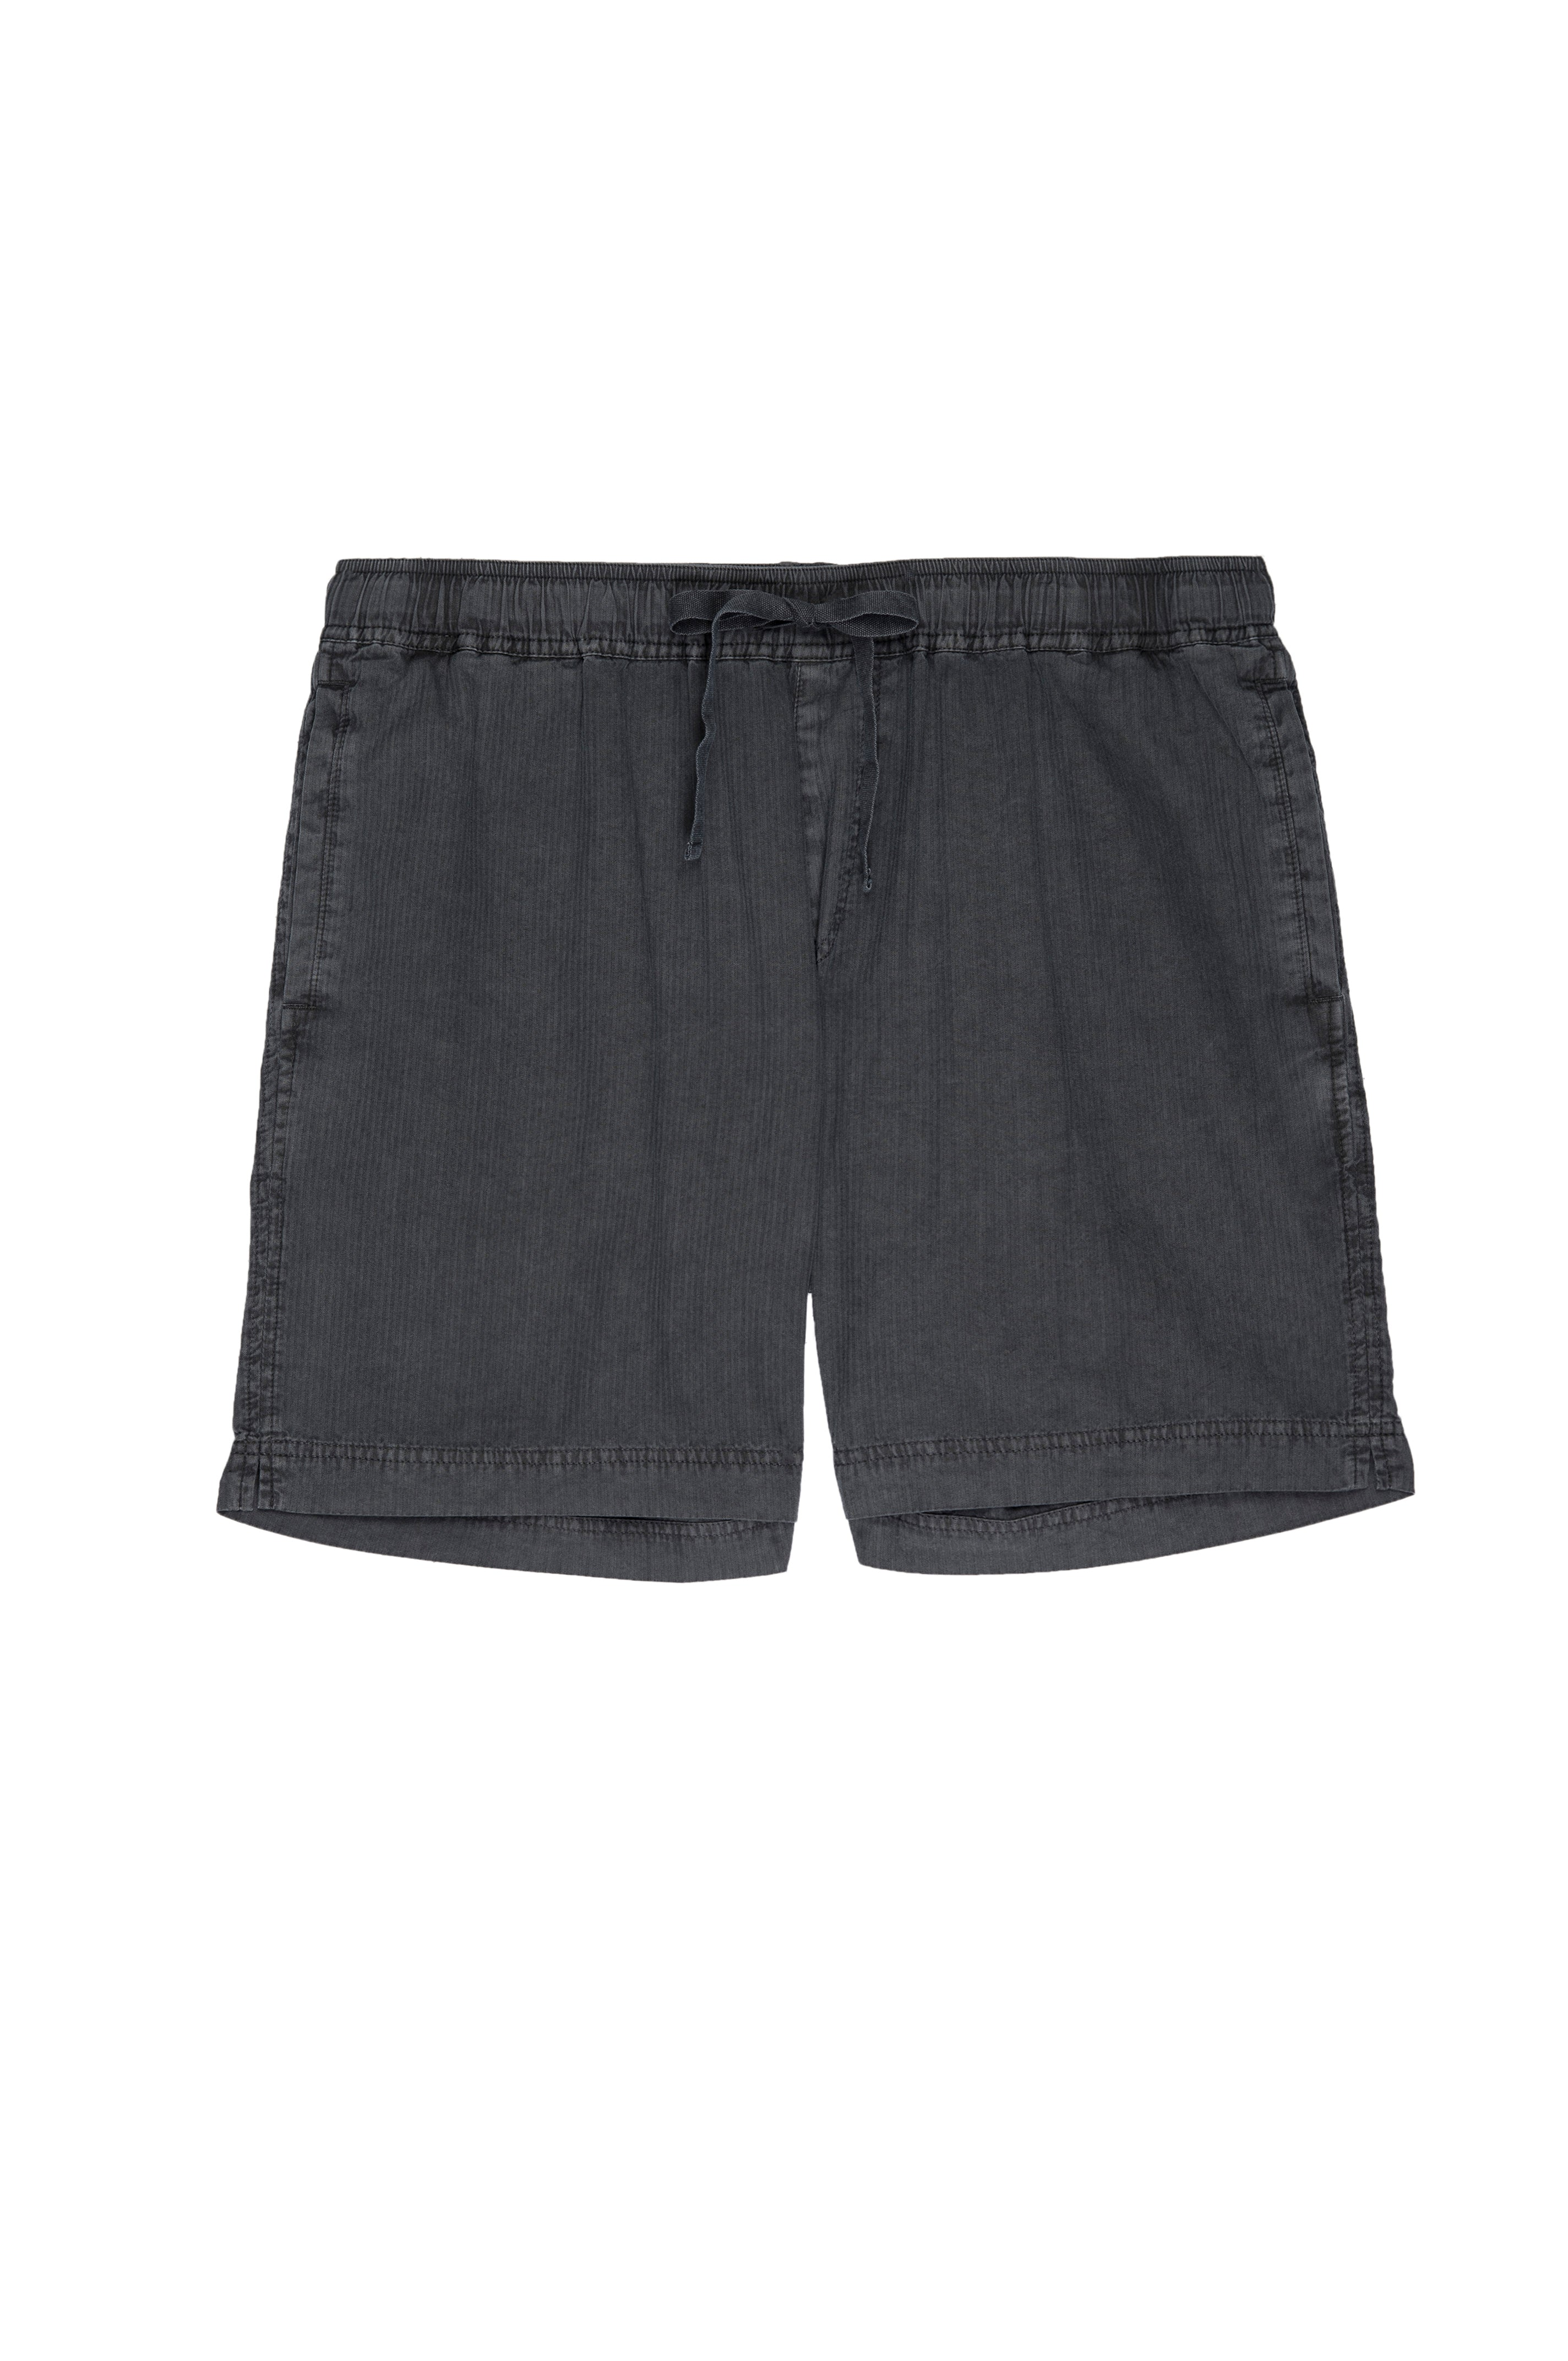 menswear, lightweight, cotton short with elastic drawstring waist in an easy relaxed fit